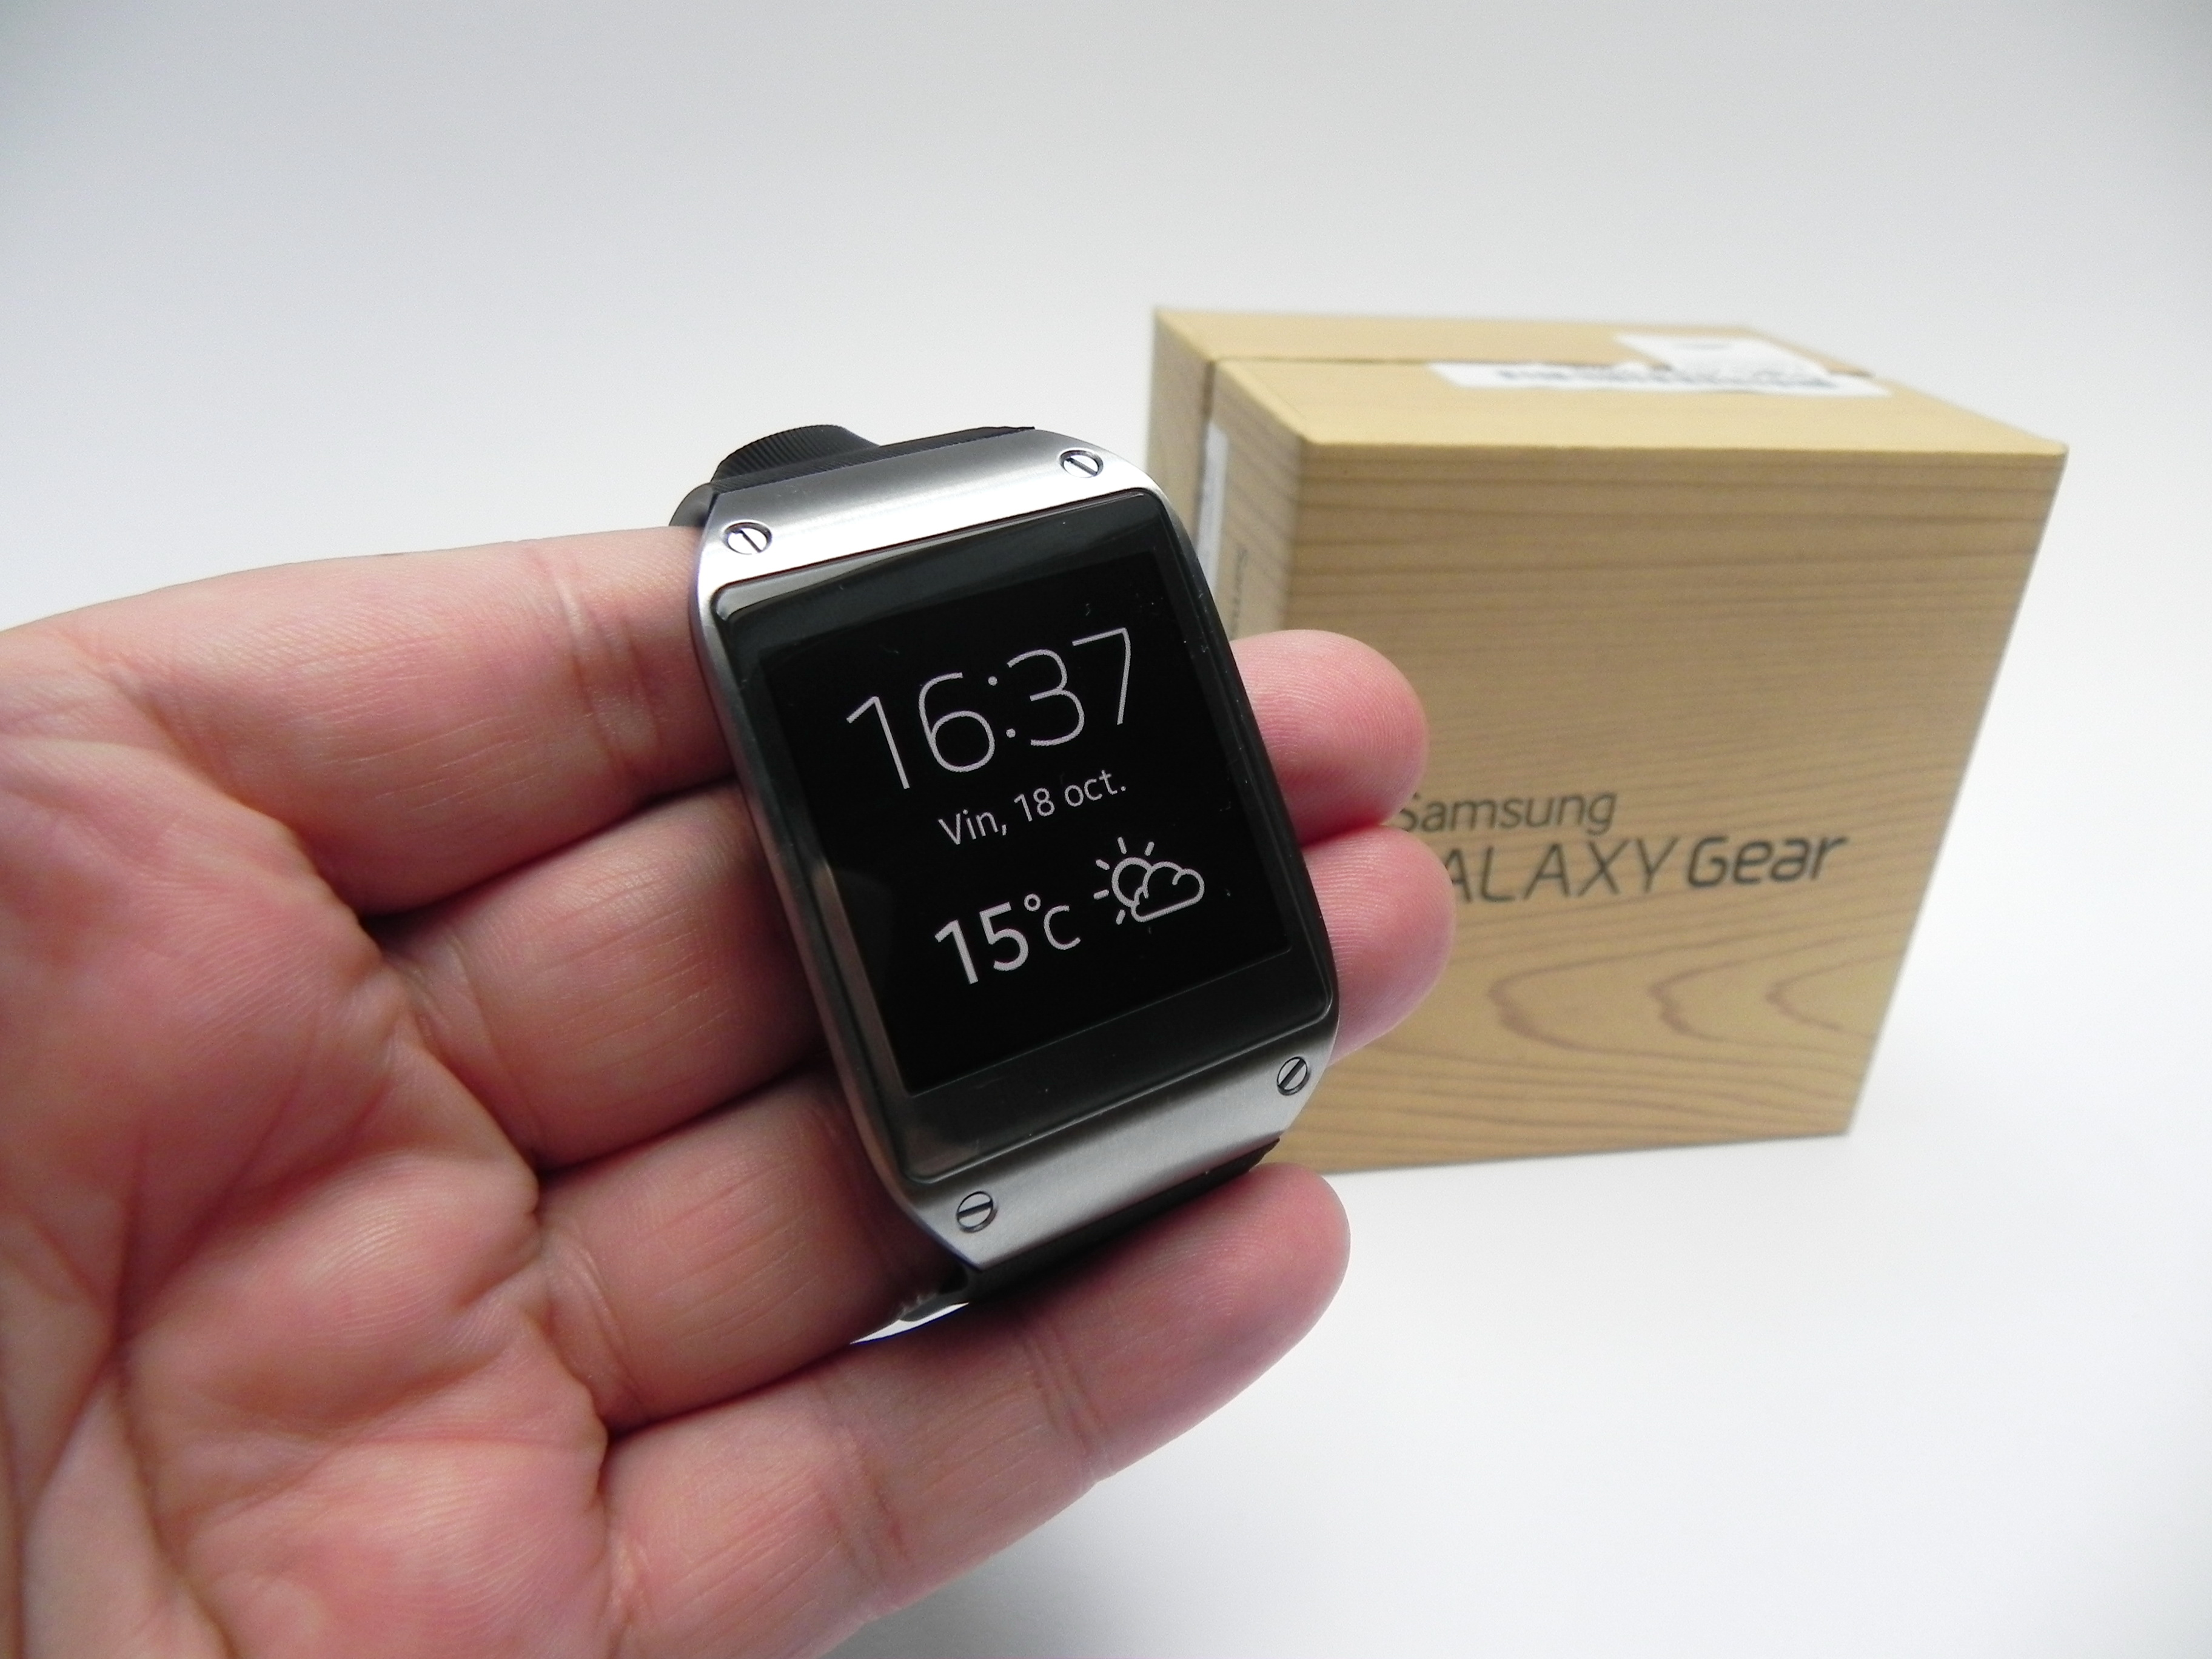 Samsung Galaxy Gear Unboxing Taking Samsung S First